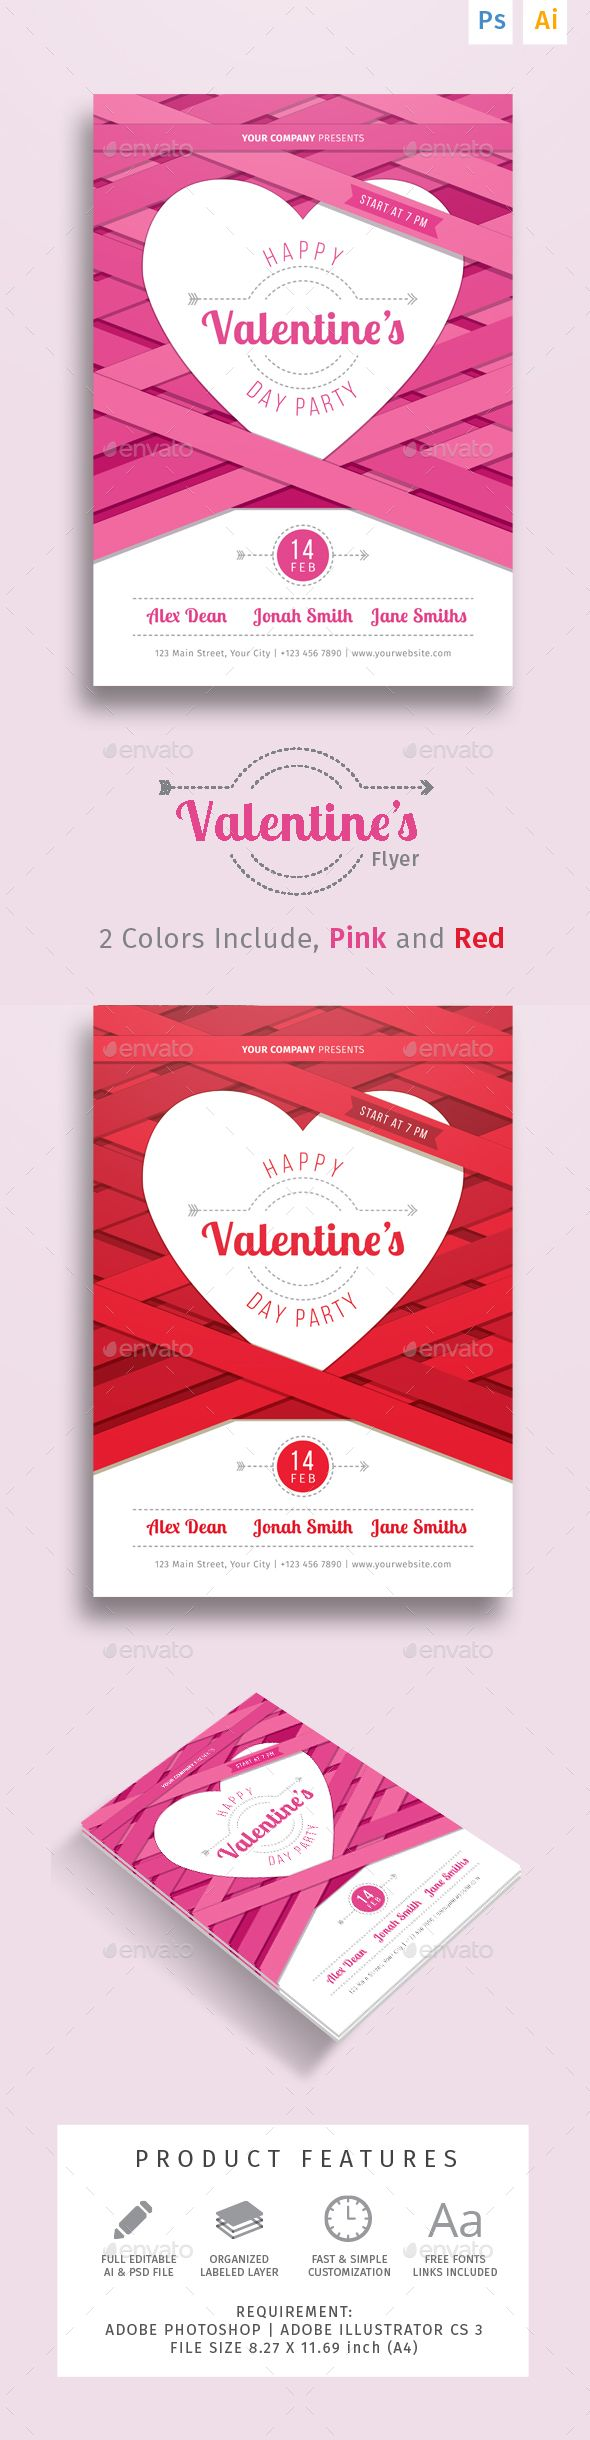 Pin By Best Graphic Design On Valentine S Flyer Templates